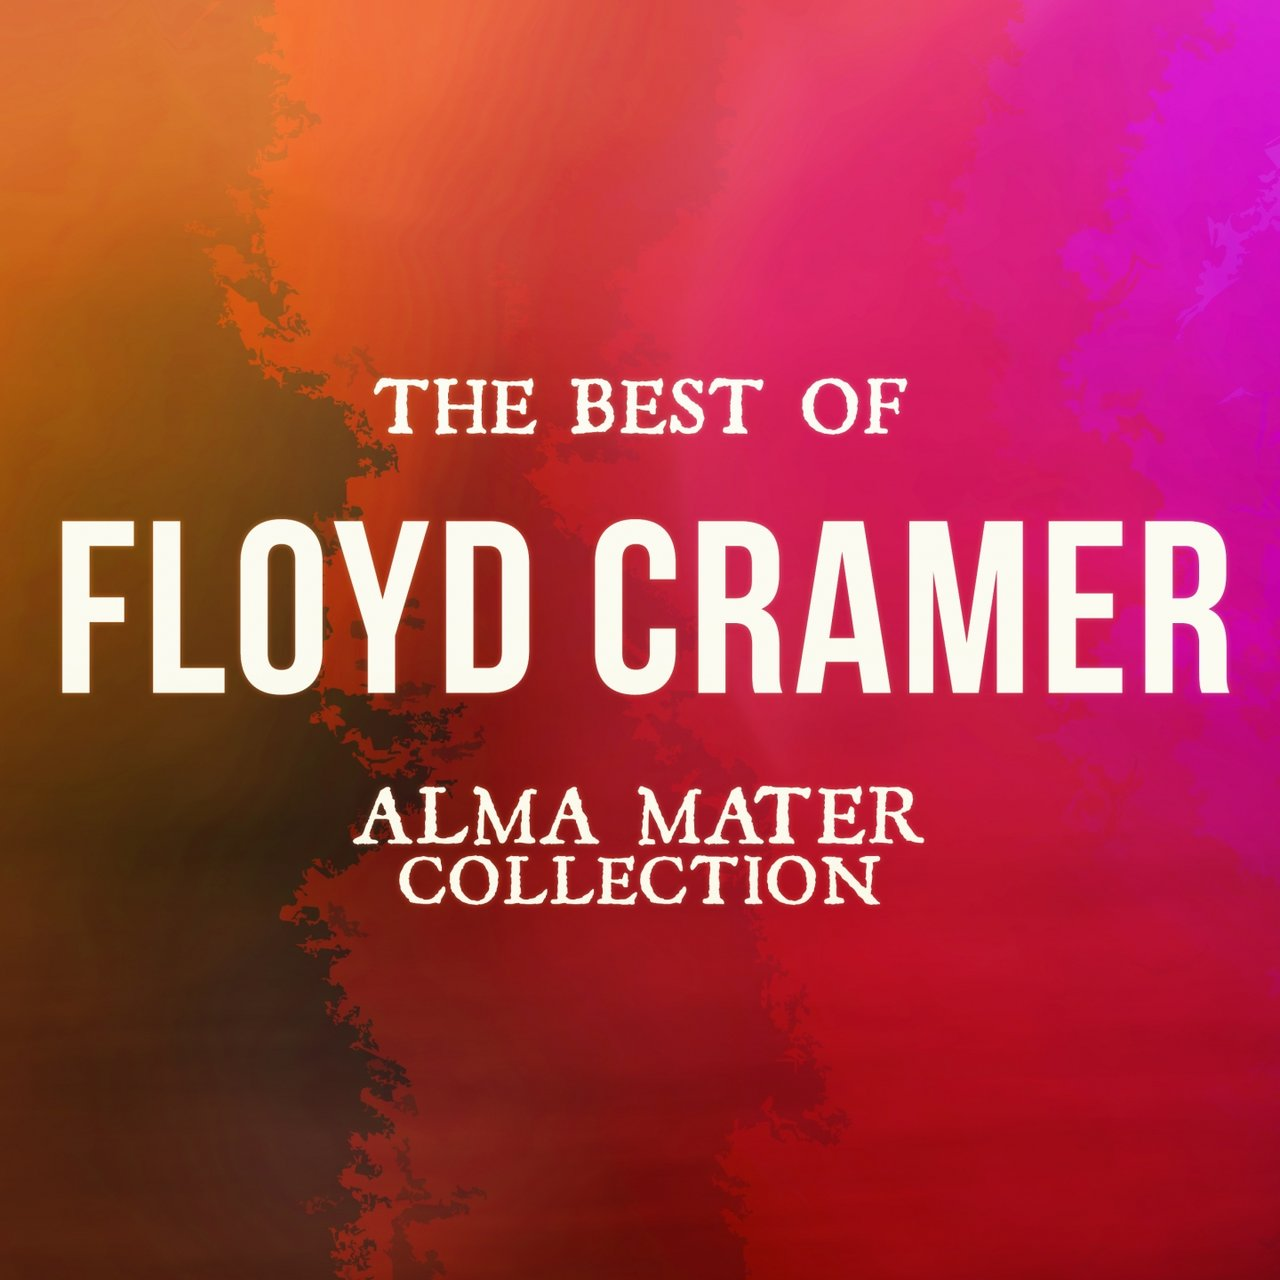 The Best of Floyd Cramer